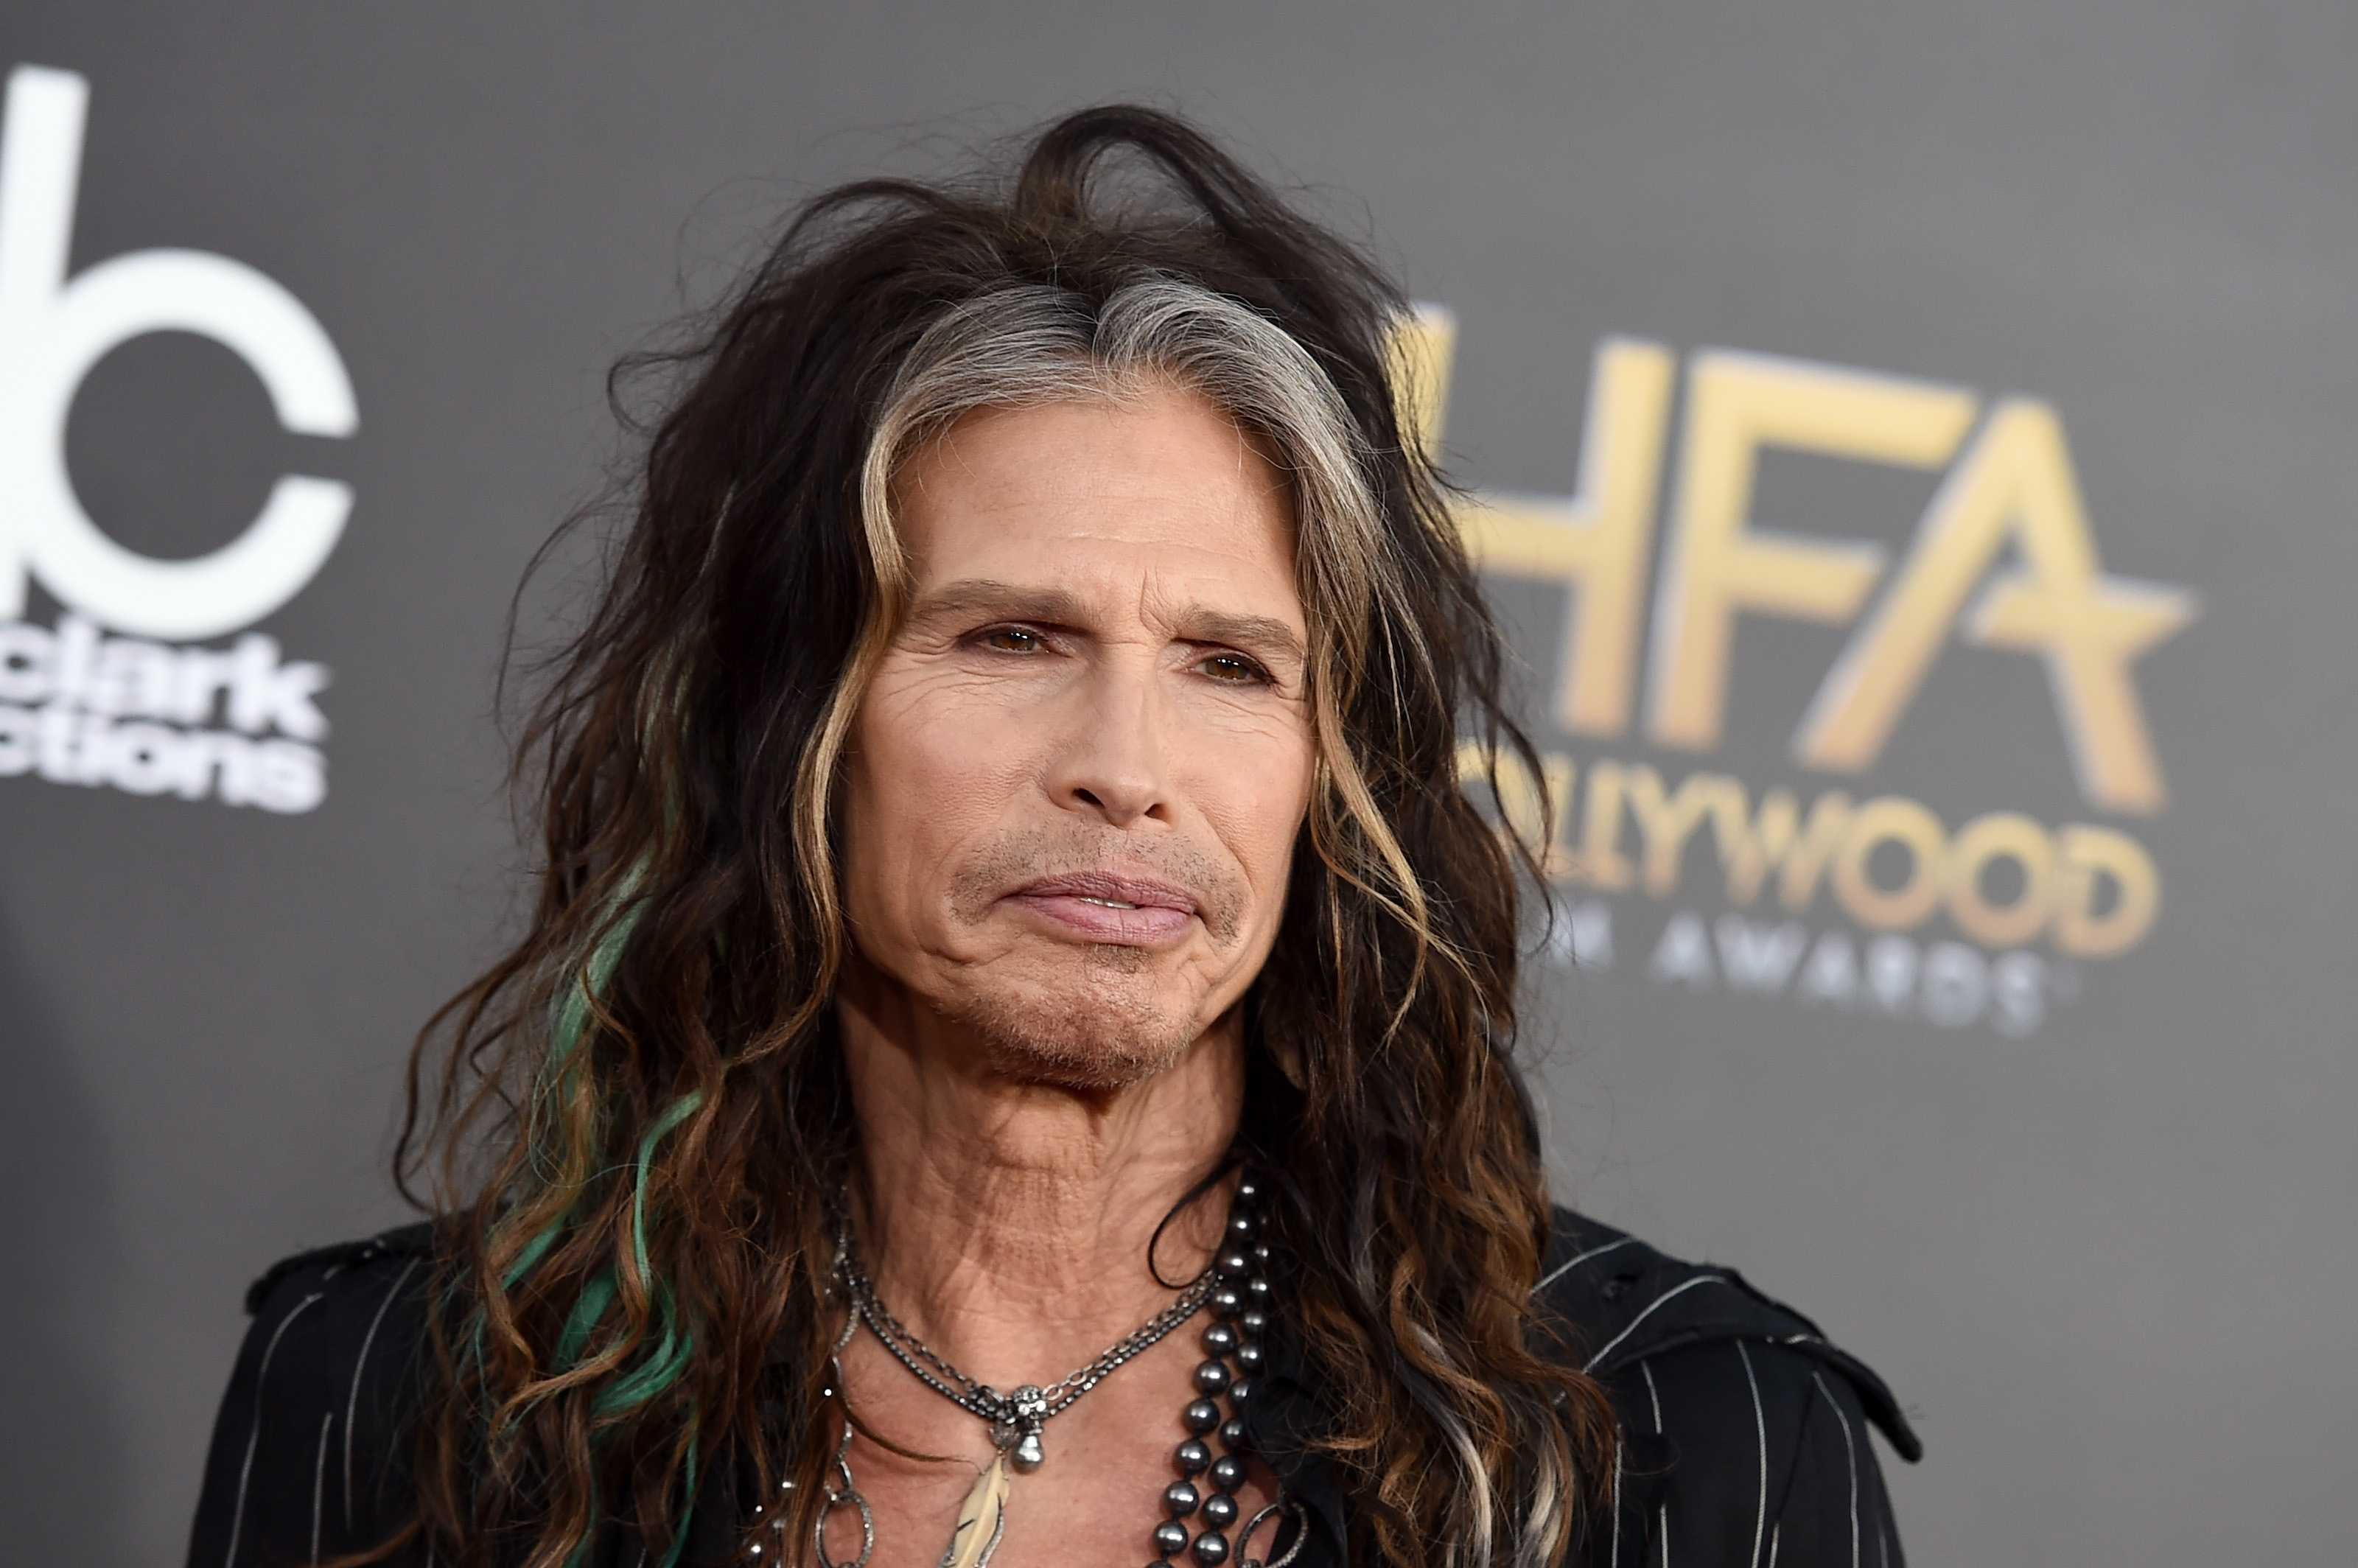 Aerosmith's Steven Tyler returns to US for medical care